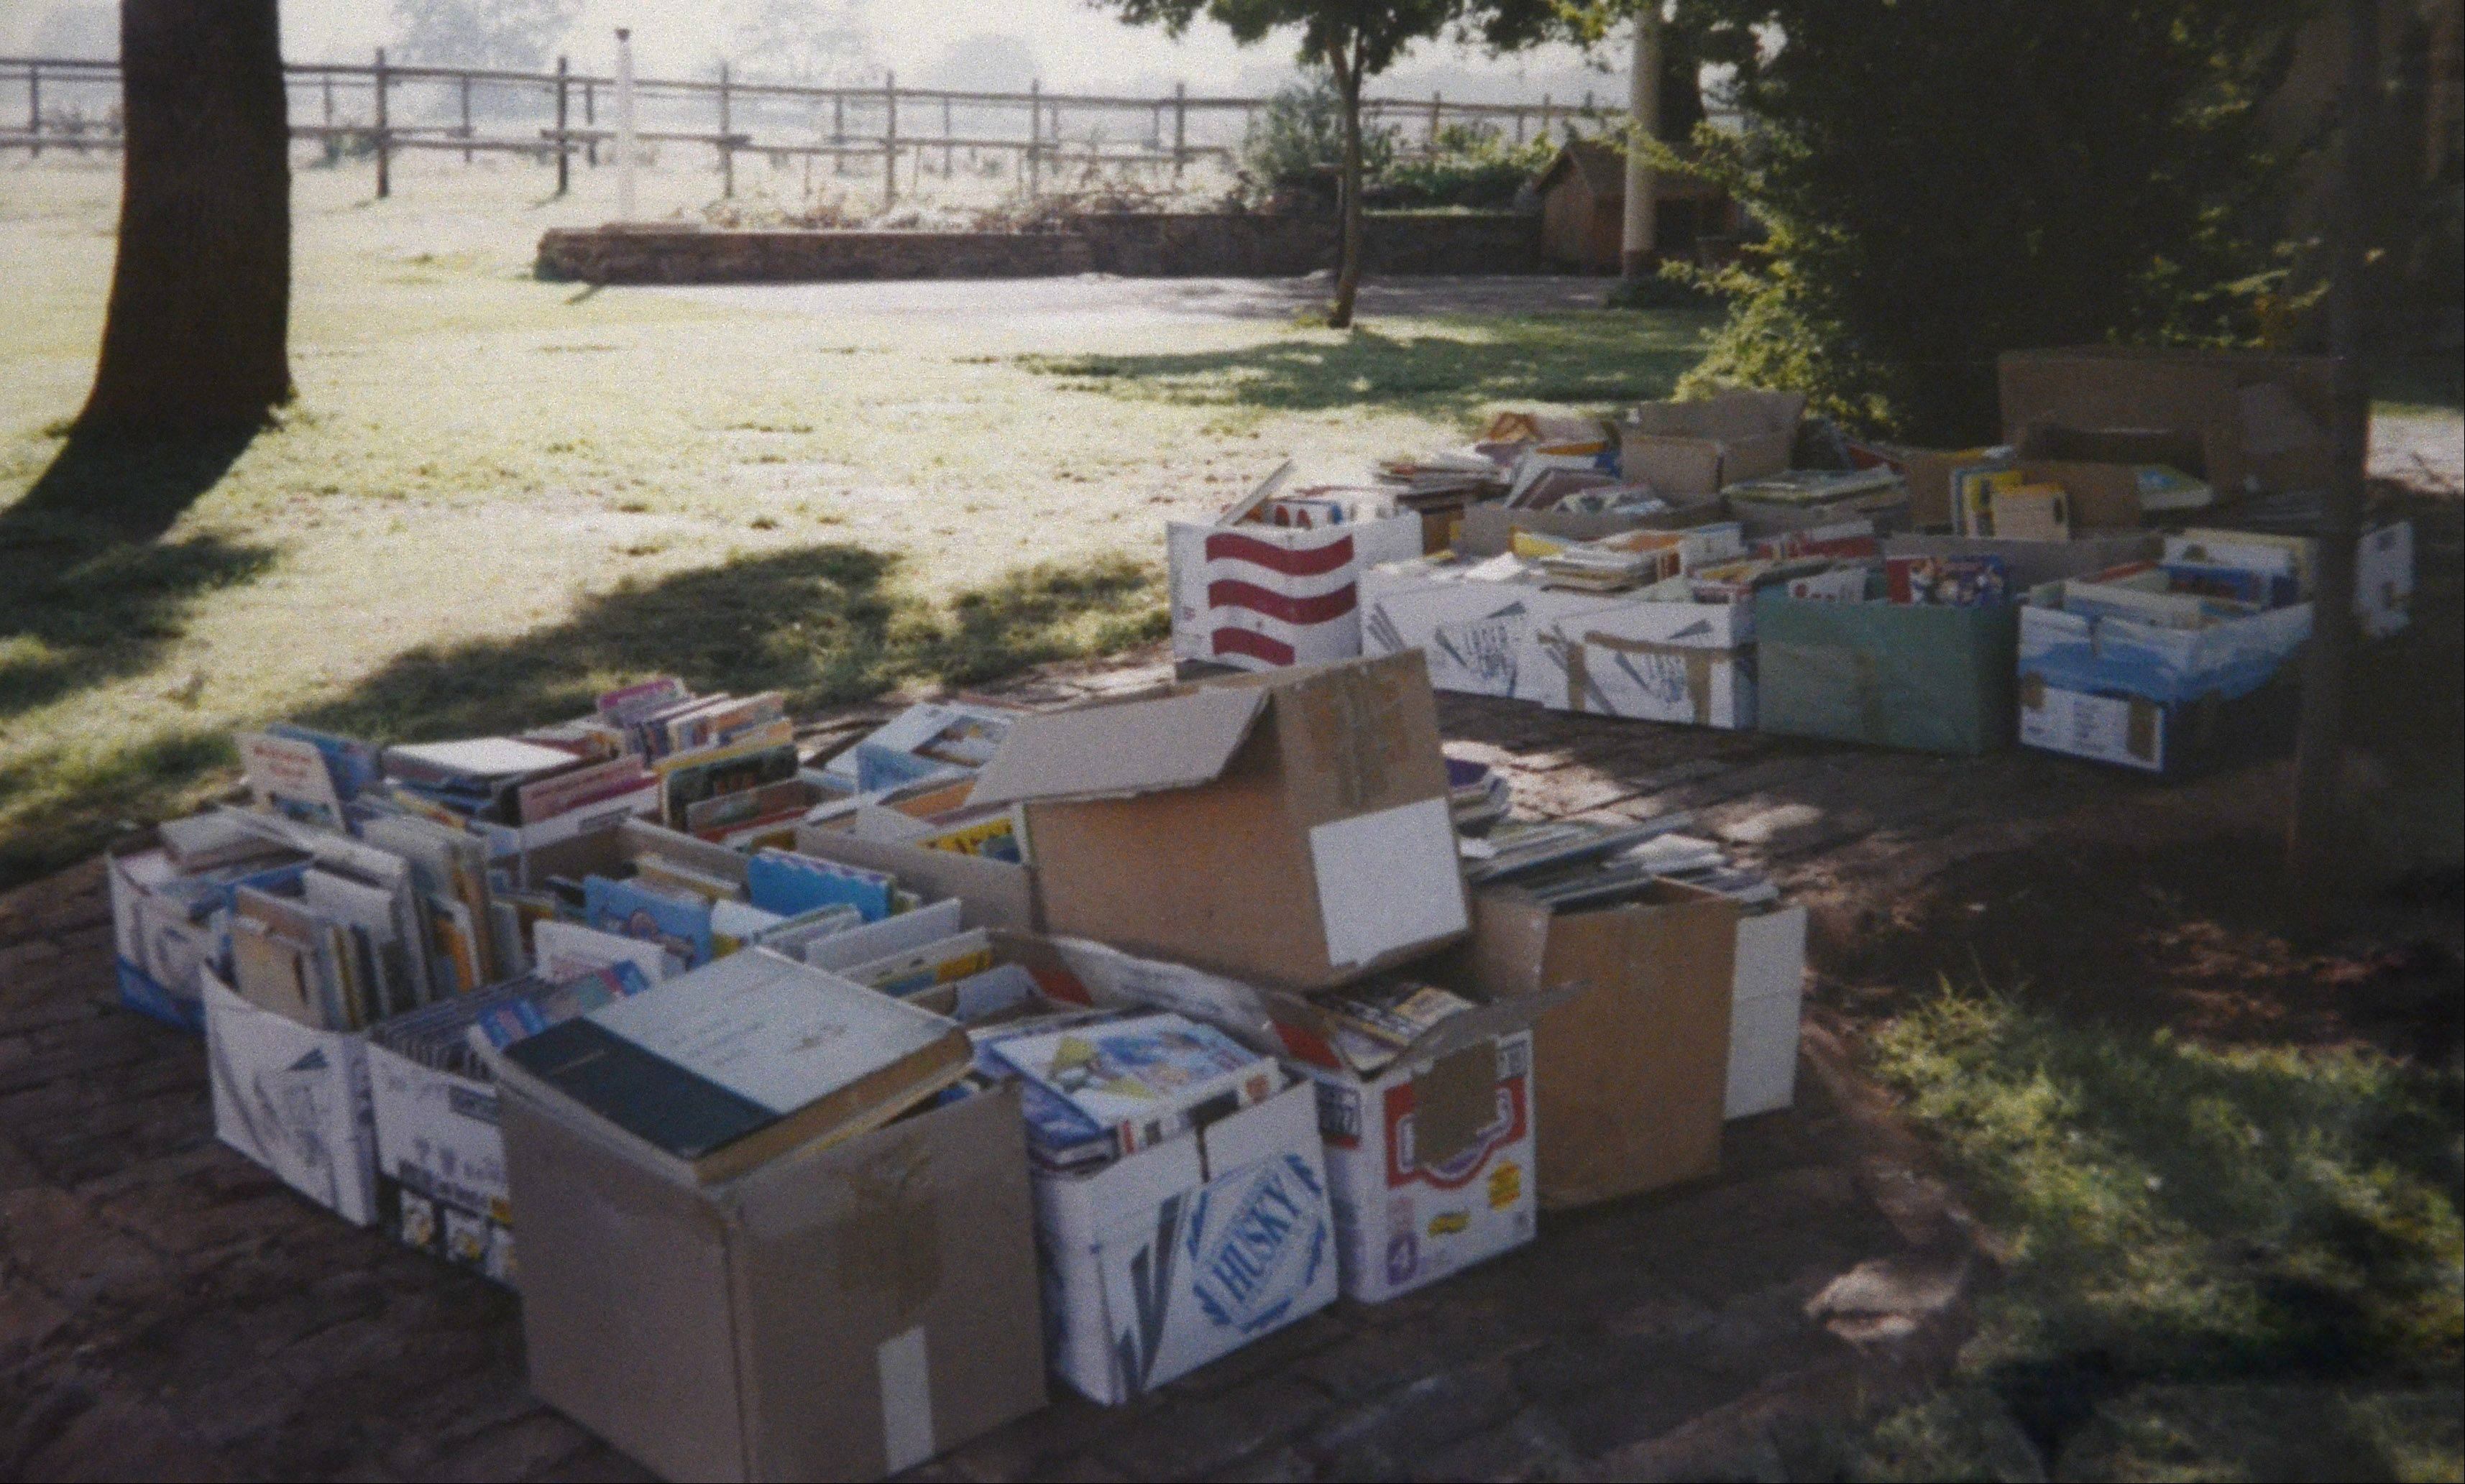 Mary Stitt helped collect 640 boxes of books for people in Africa.